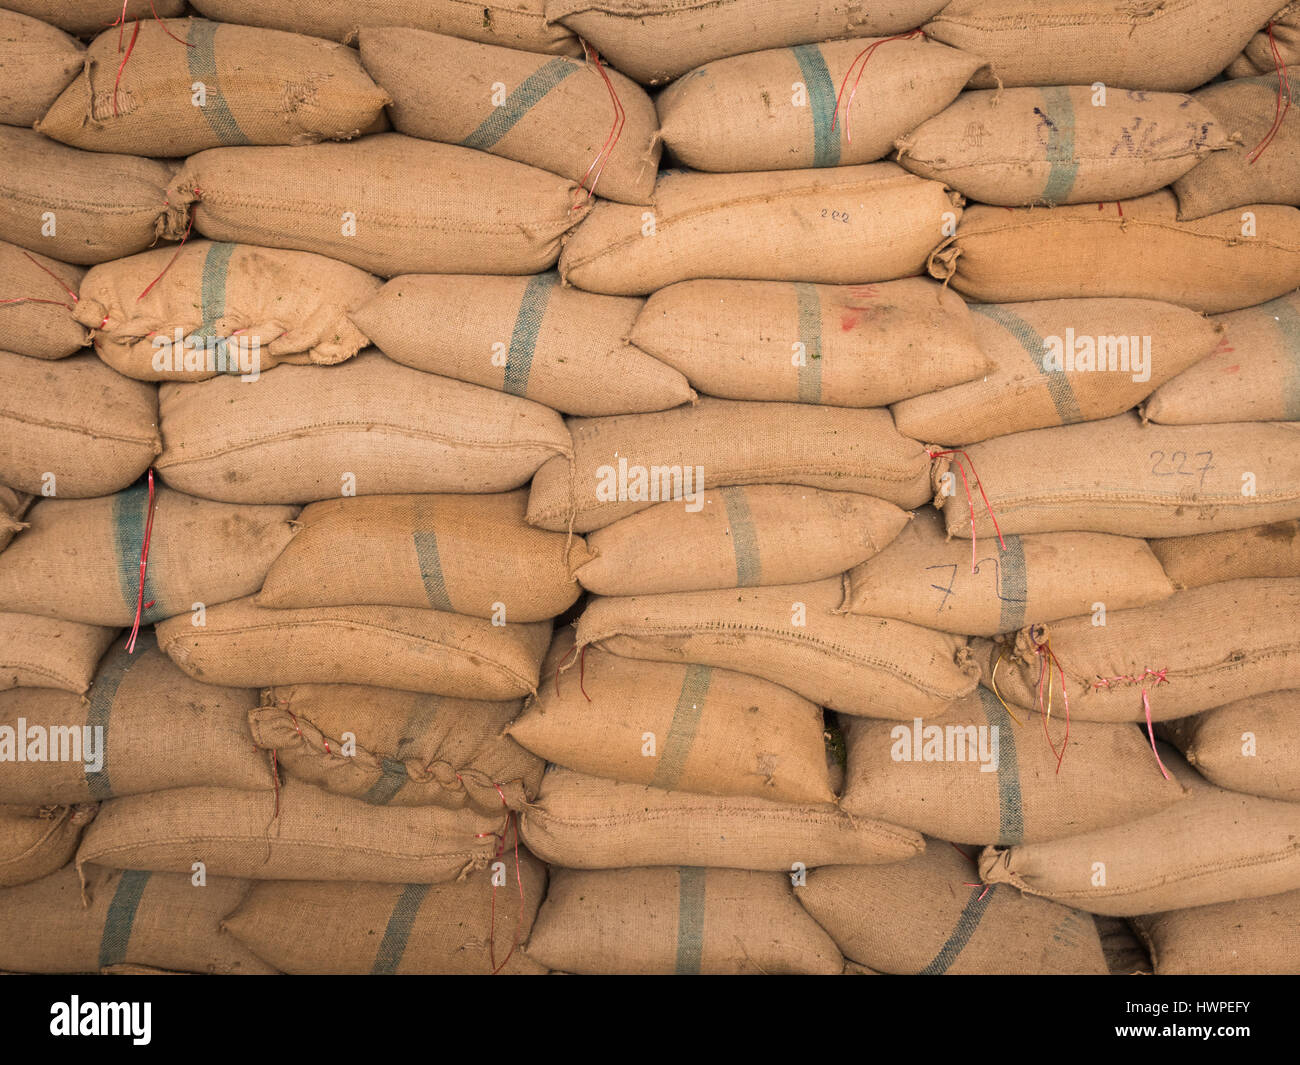 Old hemp sacks containing rice placed stacked in a row. Stock Photo